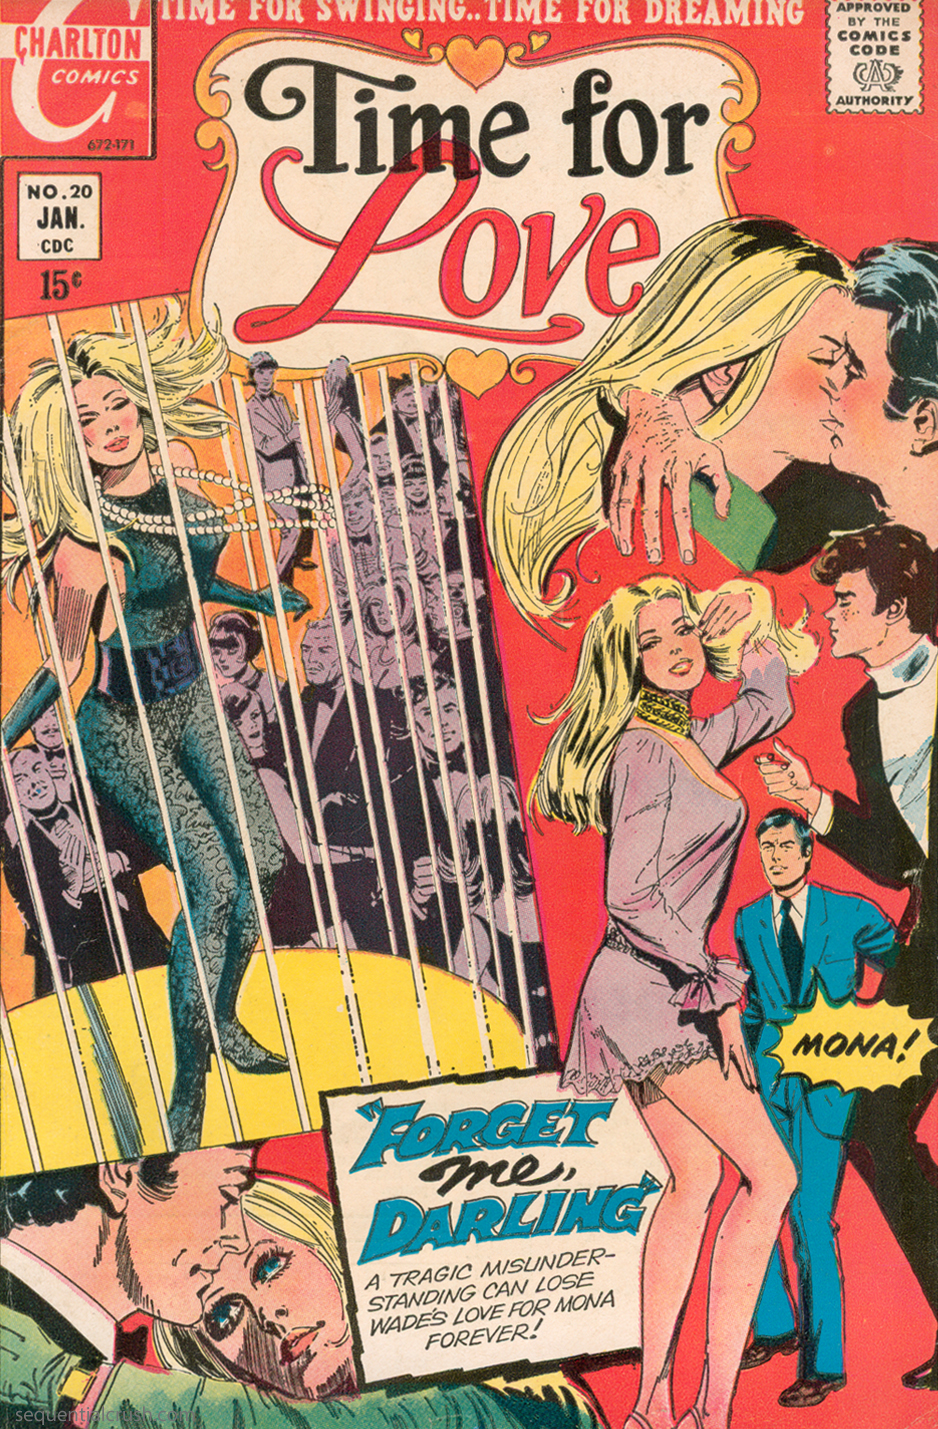 Time for Love #20 (January 1971)